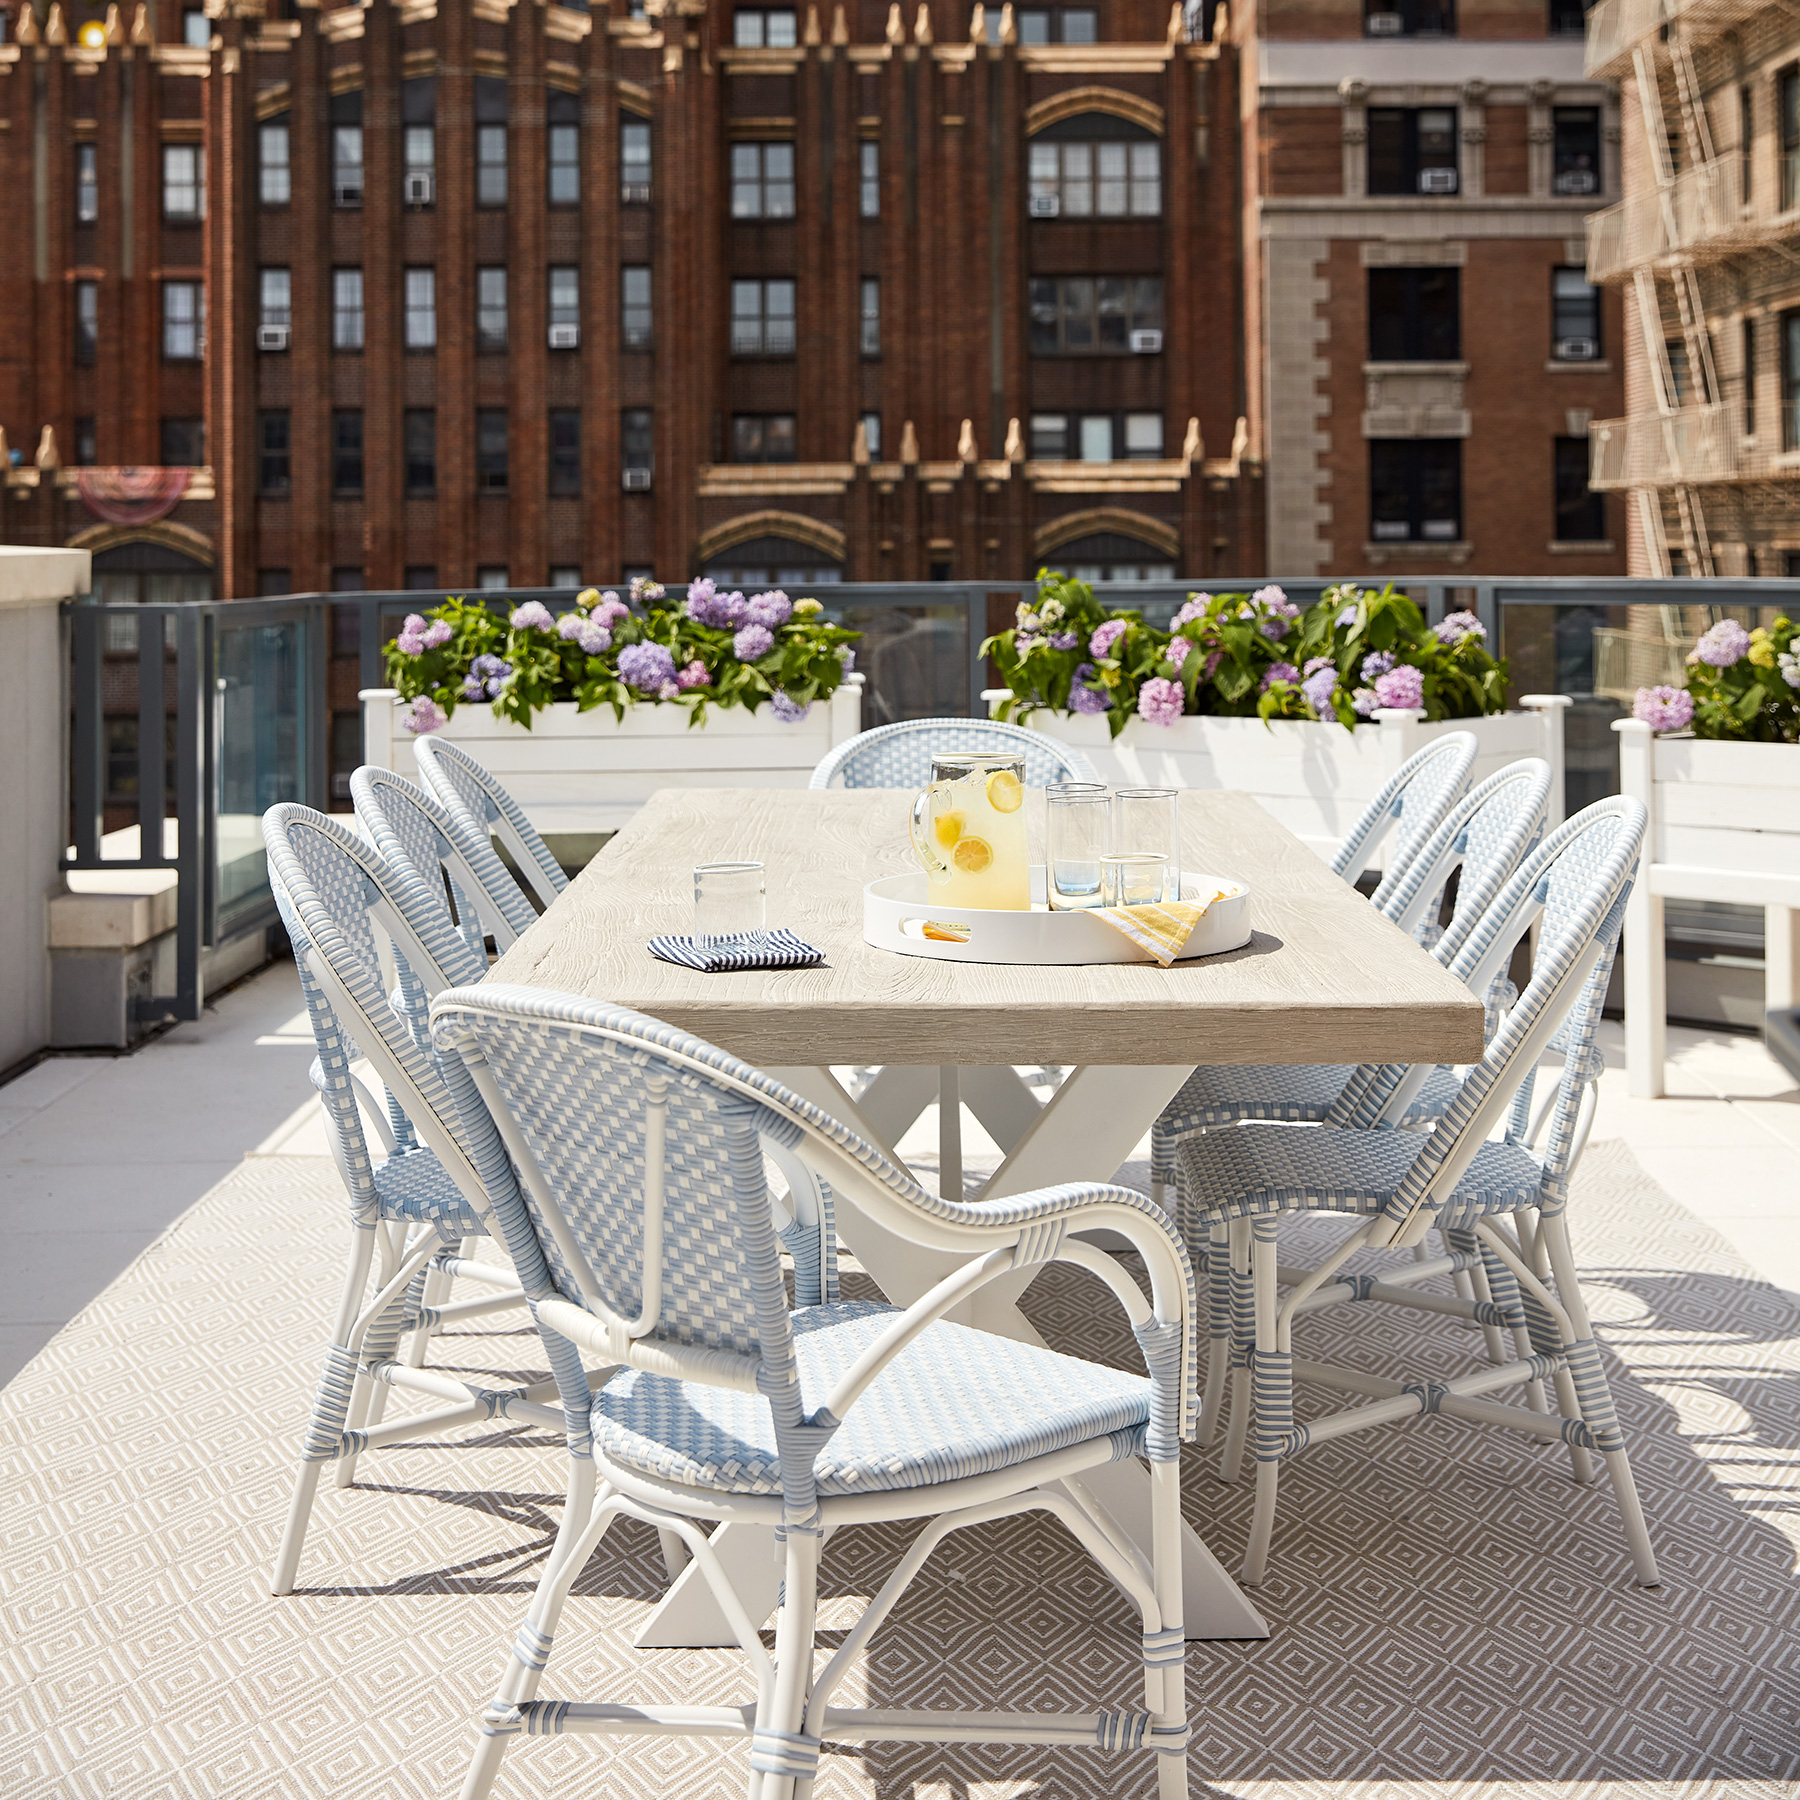 2020 Real Simple Home Tour: Terrace Dining